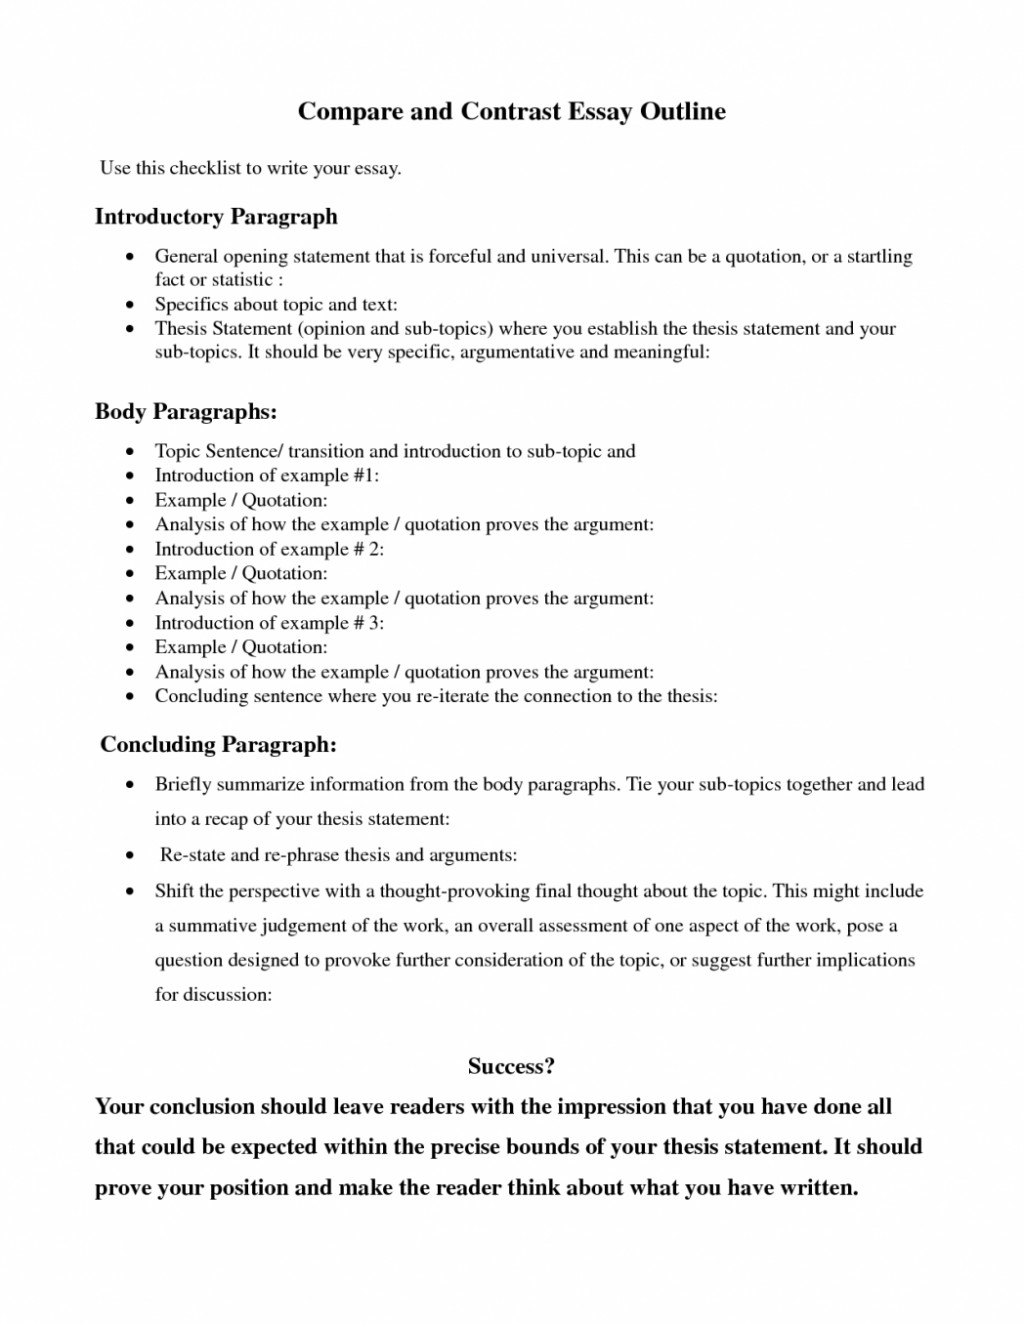 020 Act Essay Format Goal Blockety Co Examples Thesis Statement For Compare And Contrast Template Qak Good Score Pdf 1048x1356 Example How To Wonderful Write Scene Number In A New Killer Large